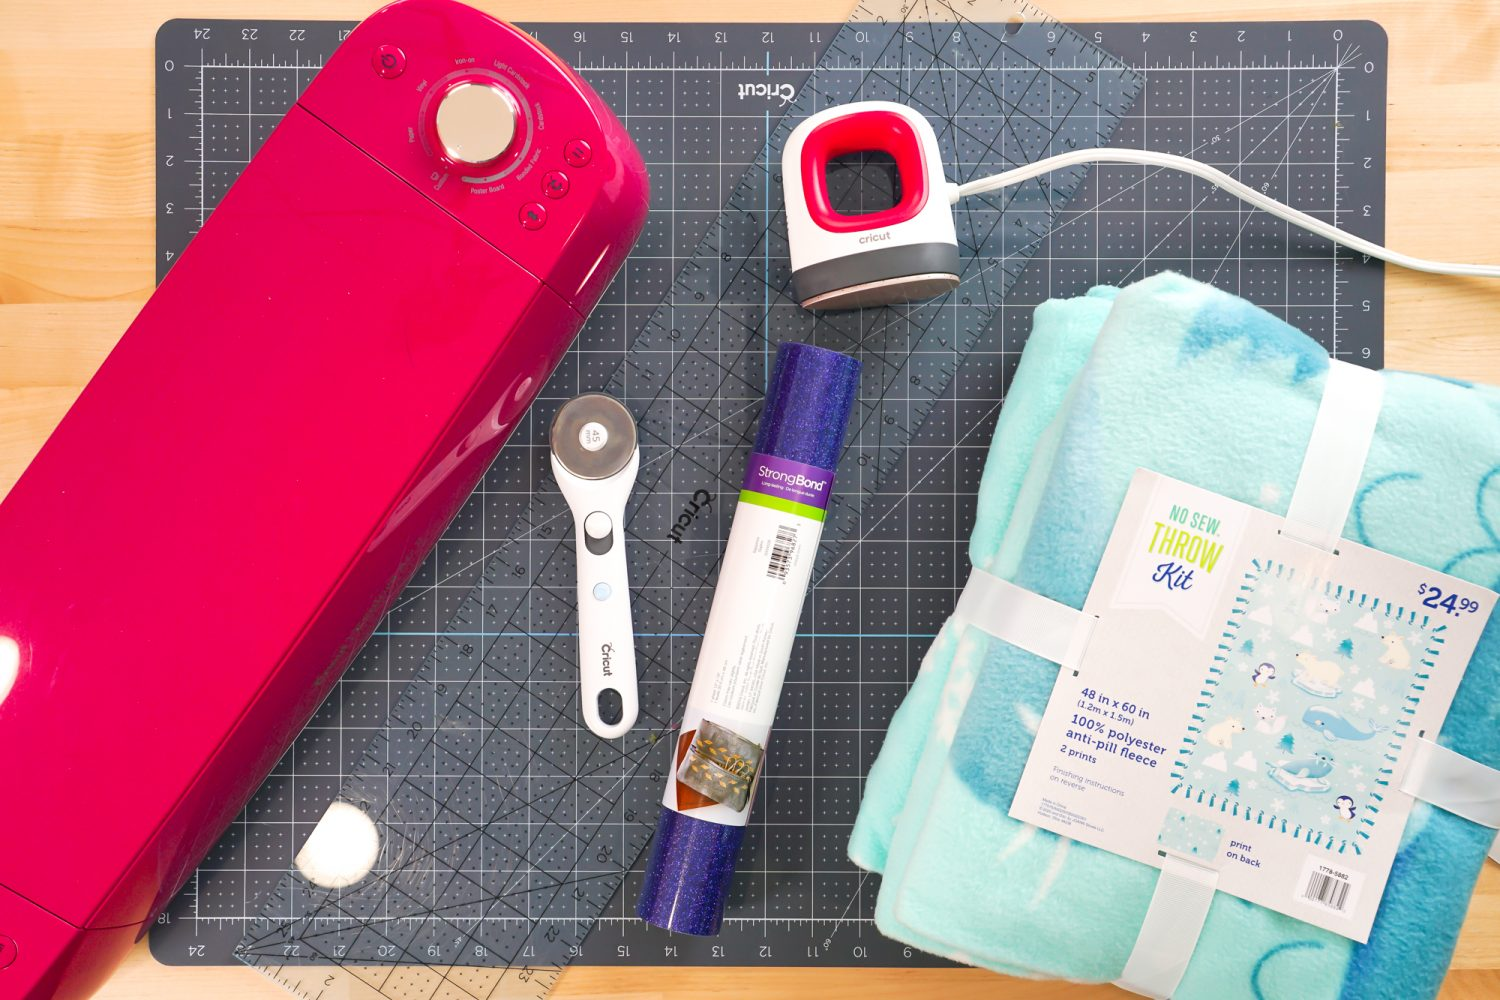 Supplies needed for this project: Cricut Explore, fleece blanket kit, rotary cutter, ruler, cutting mat, EasyPress Mini